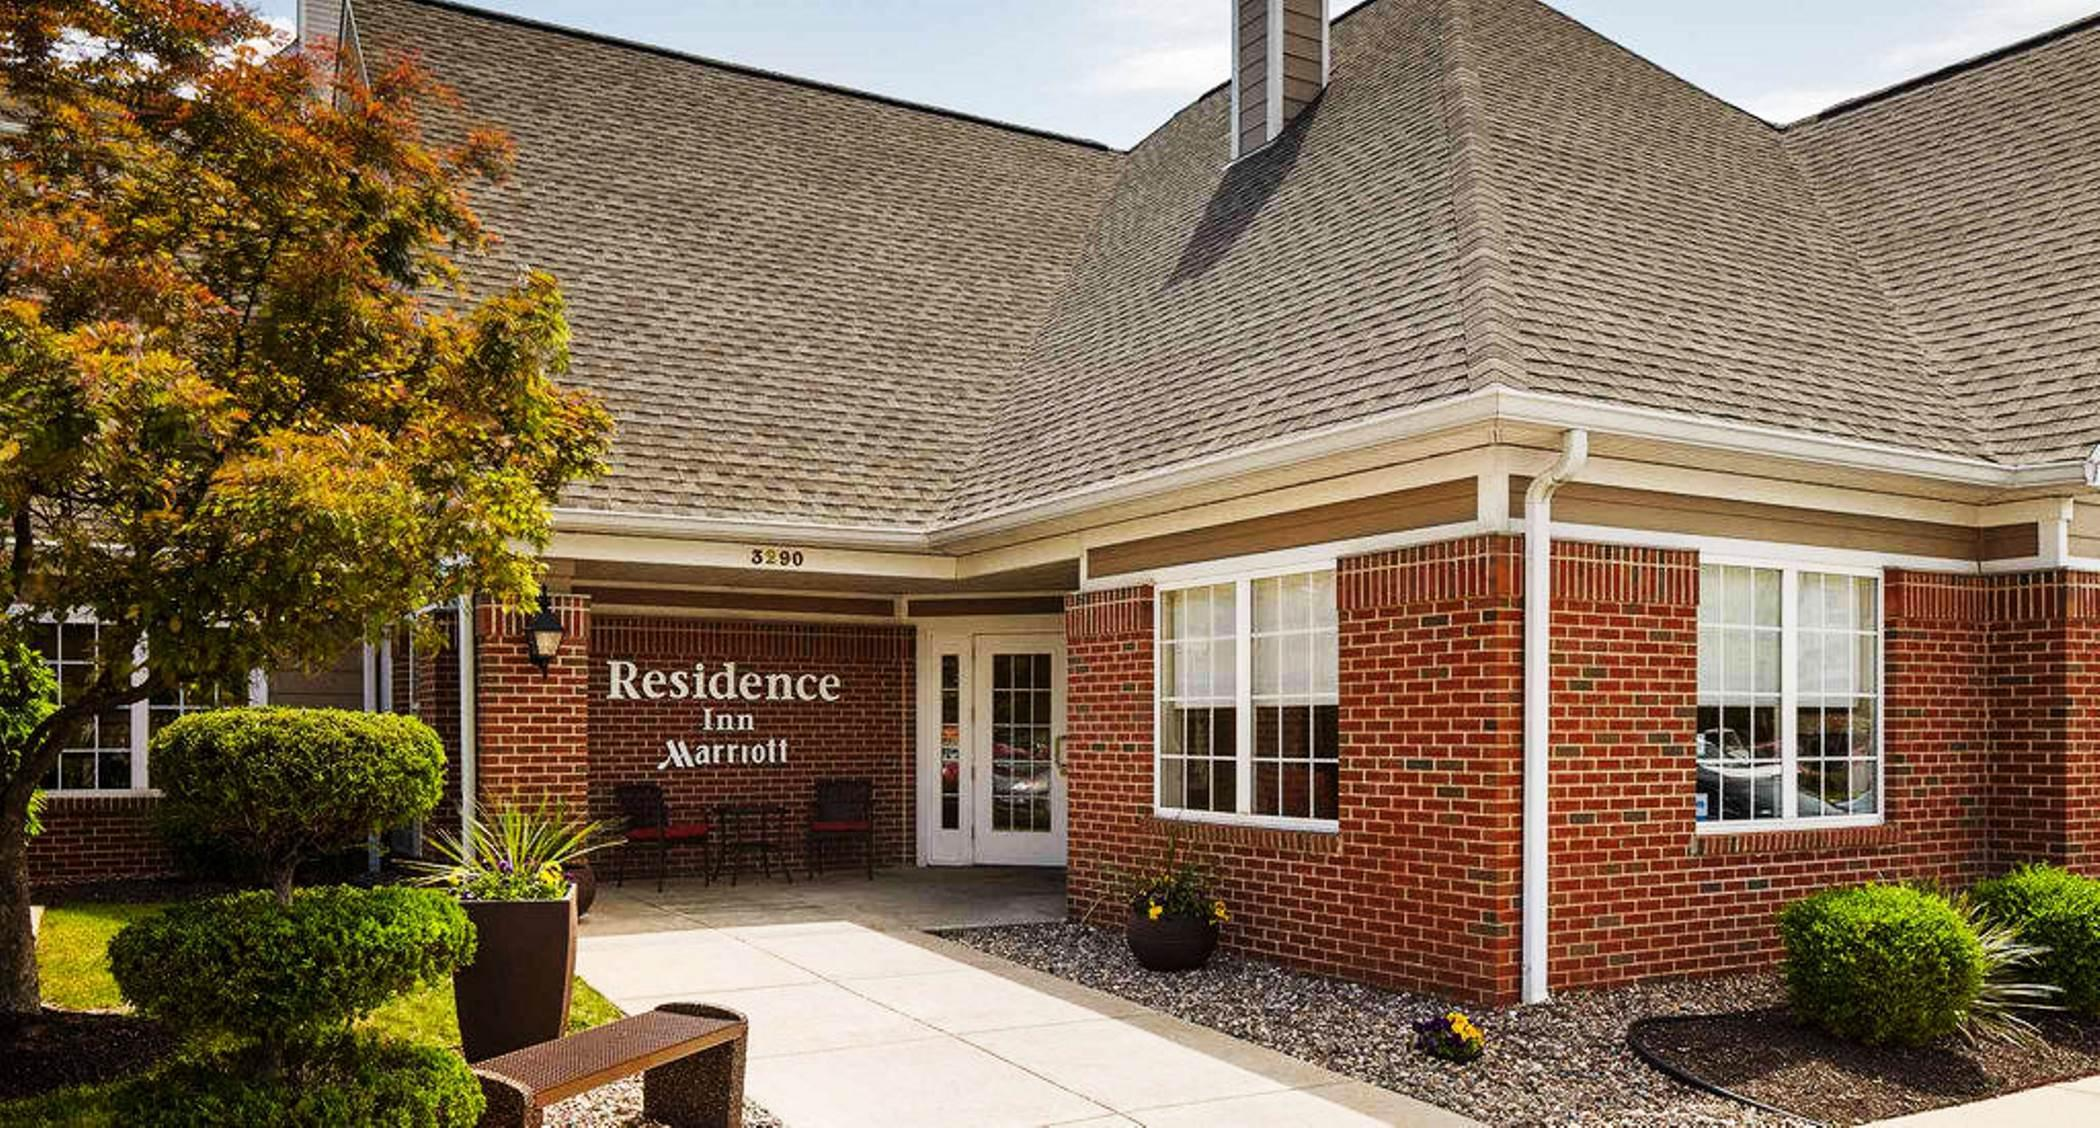 Residence Inn St. Louis Airport/Earth City, Saint Louis